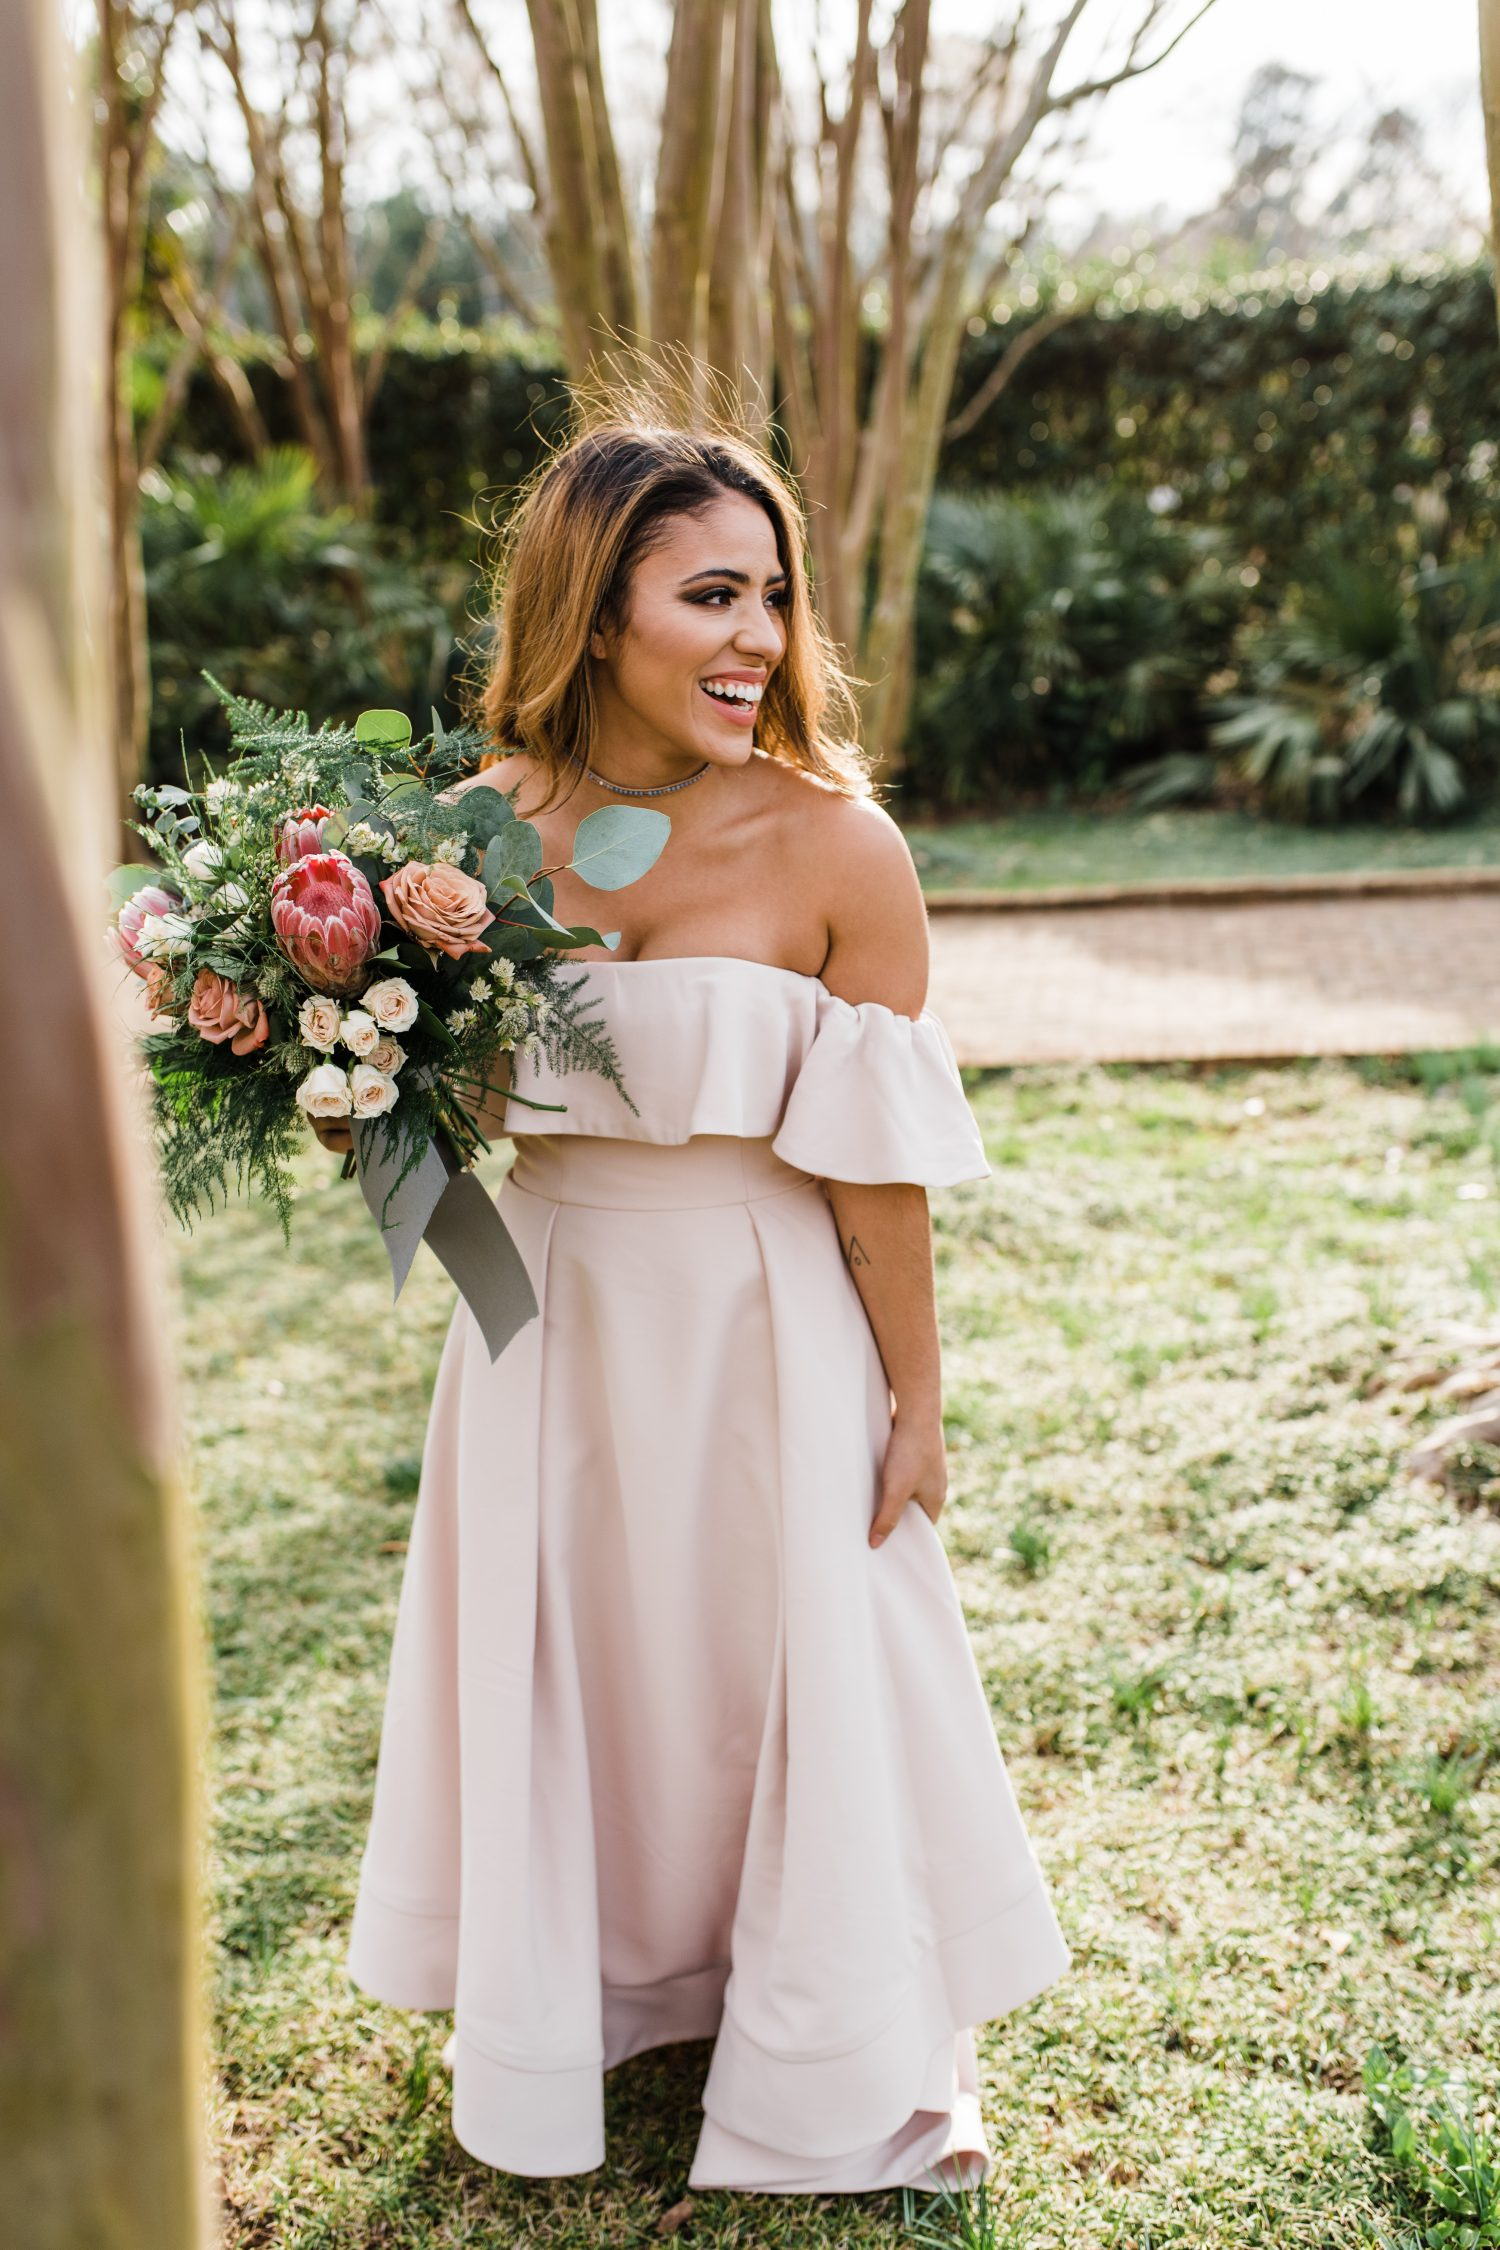 Eco-friendly Bridal Styled Shoot | Daniel Stow Botanical Garden | Easterday Creative | Adventurous wedding photographer and storyteller